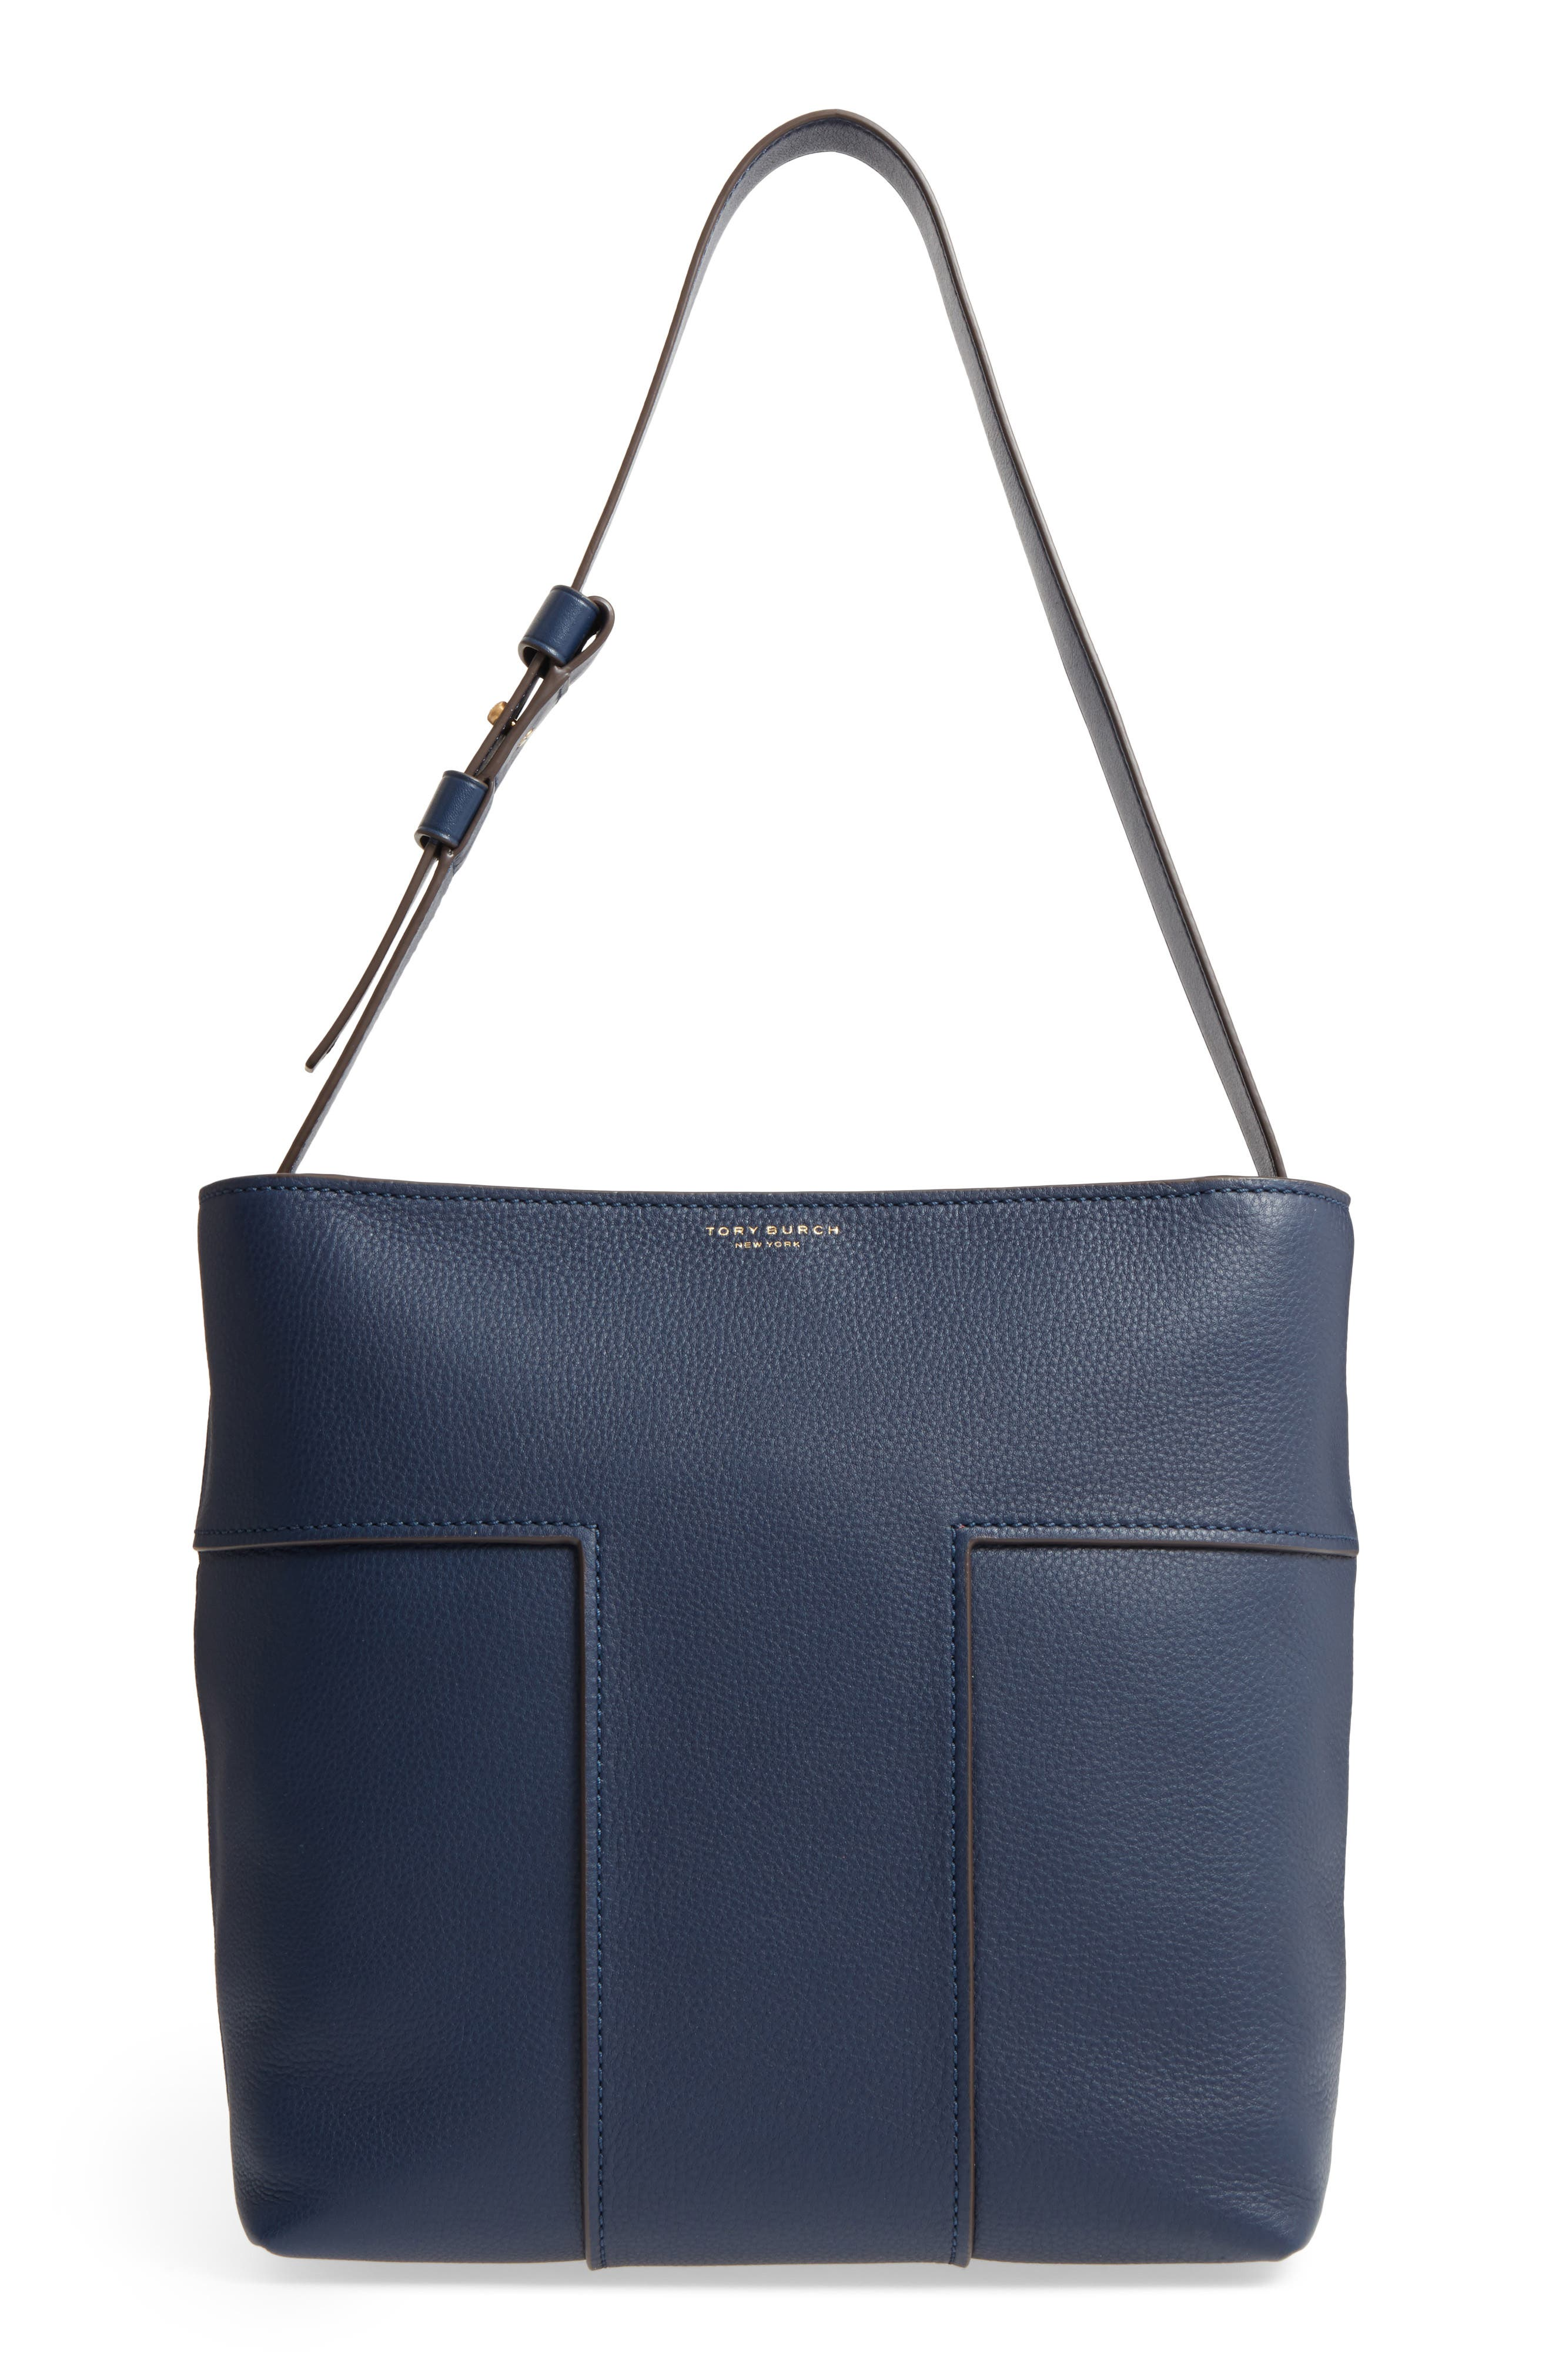 Alternate Image 1 Selected - Tory Burch Block-T Pebbled Leather Hobo